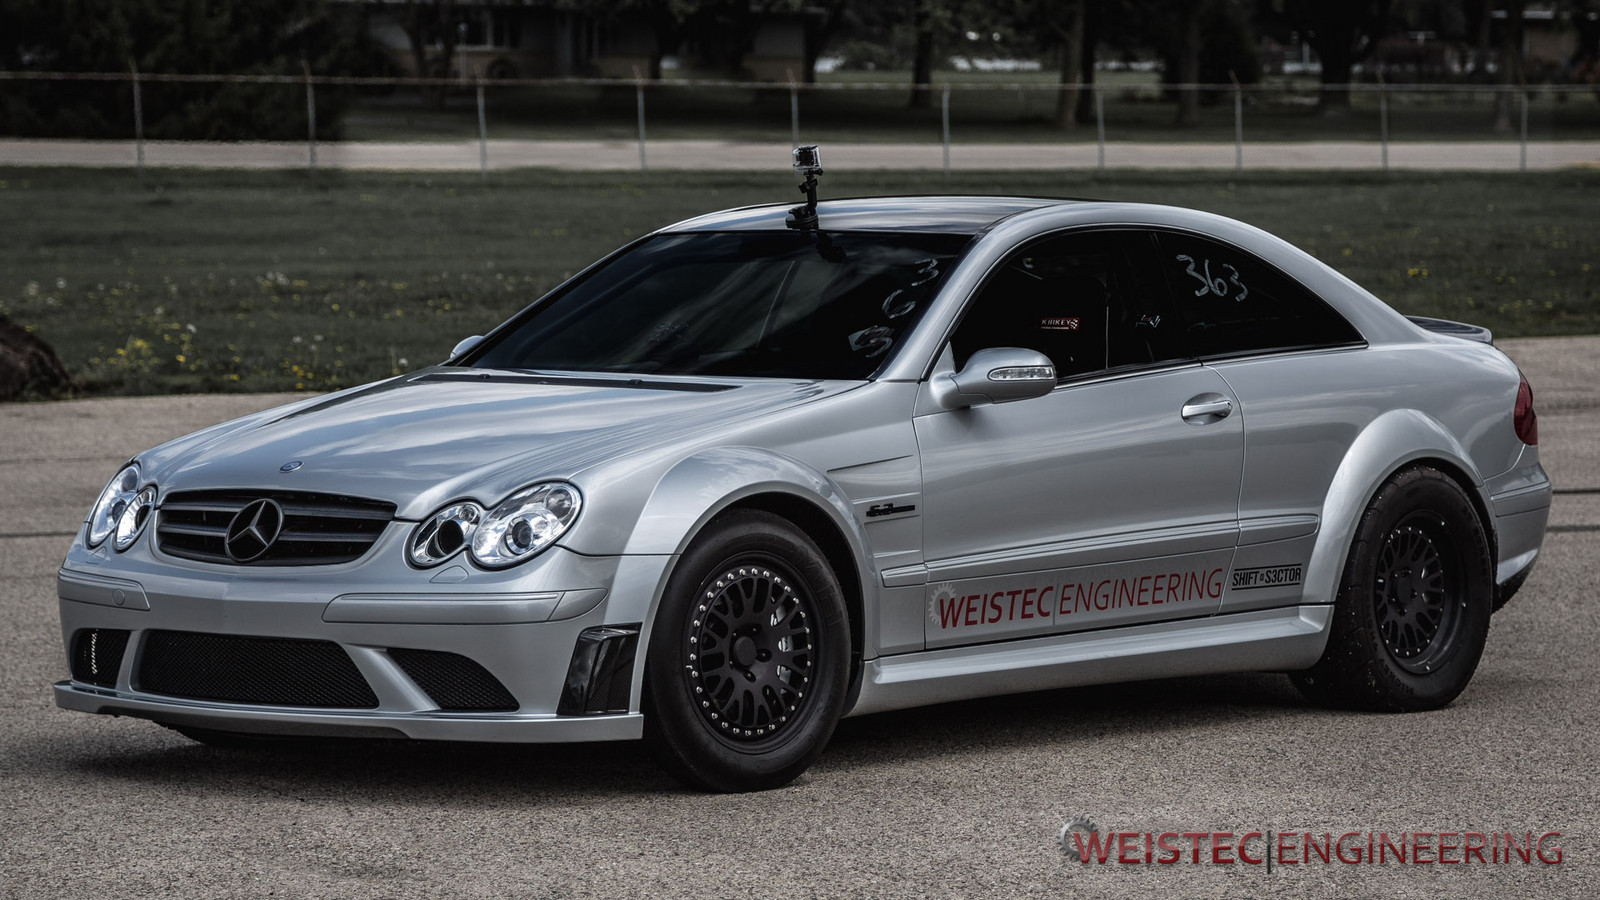 2008 Mercedes-Benz CLK63 AMG WEISTEC SUPERCHARGED